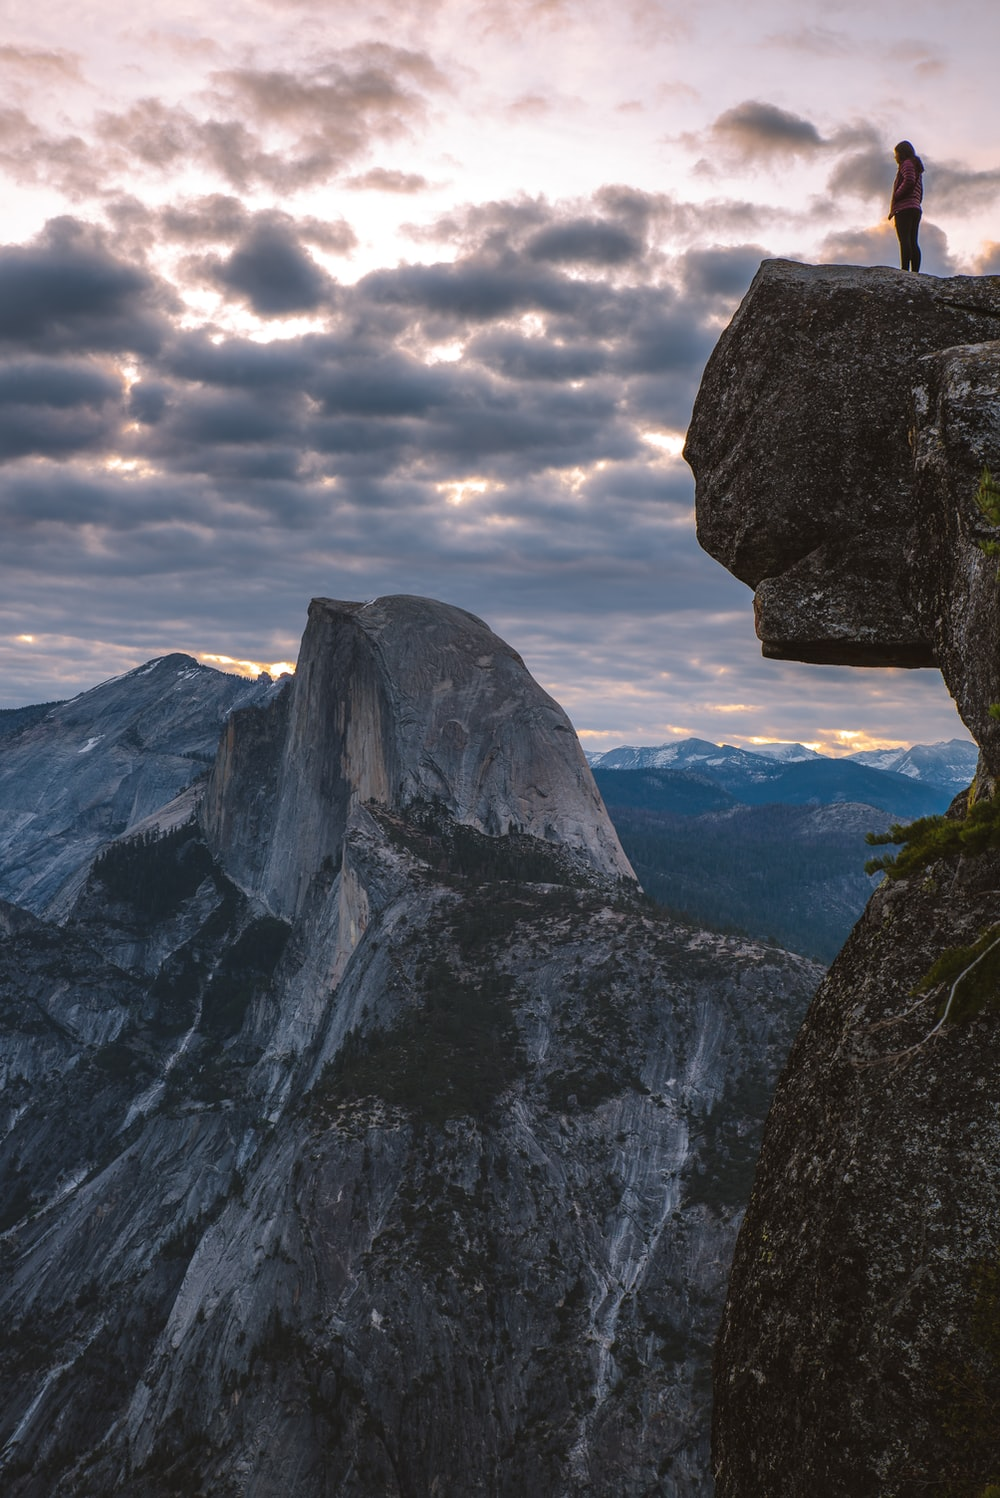 person standing on rocky mountain cliff